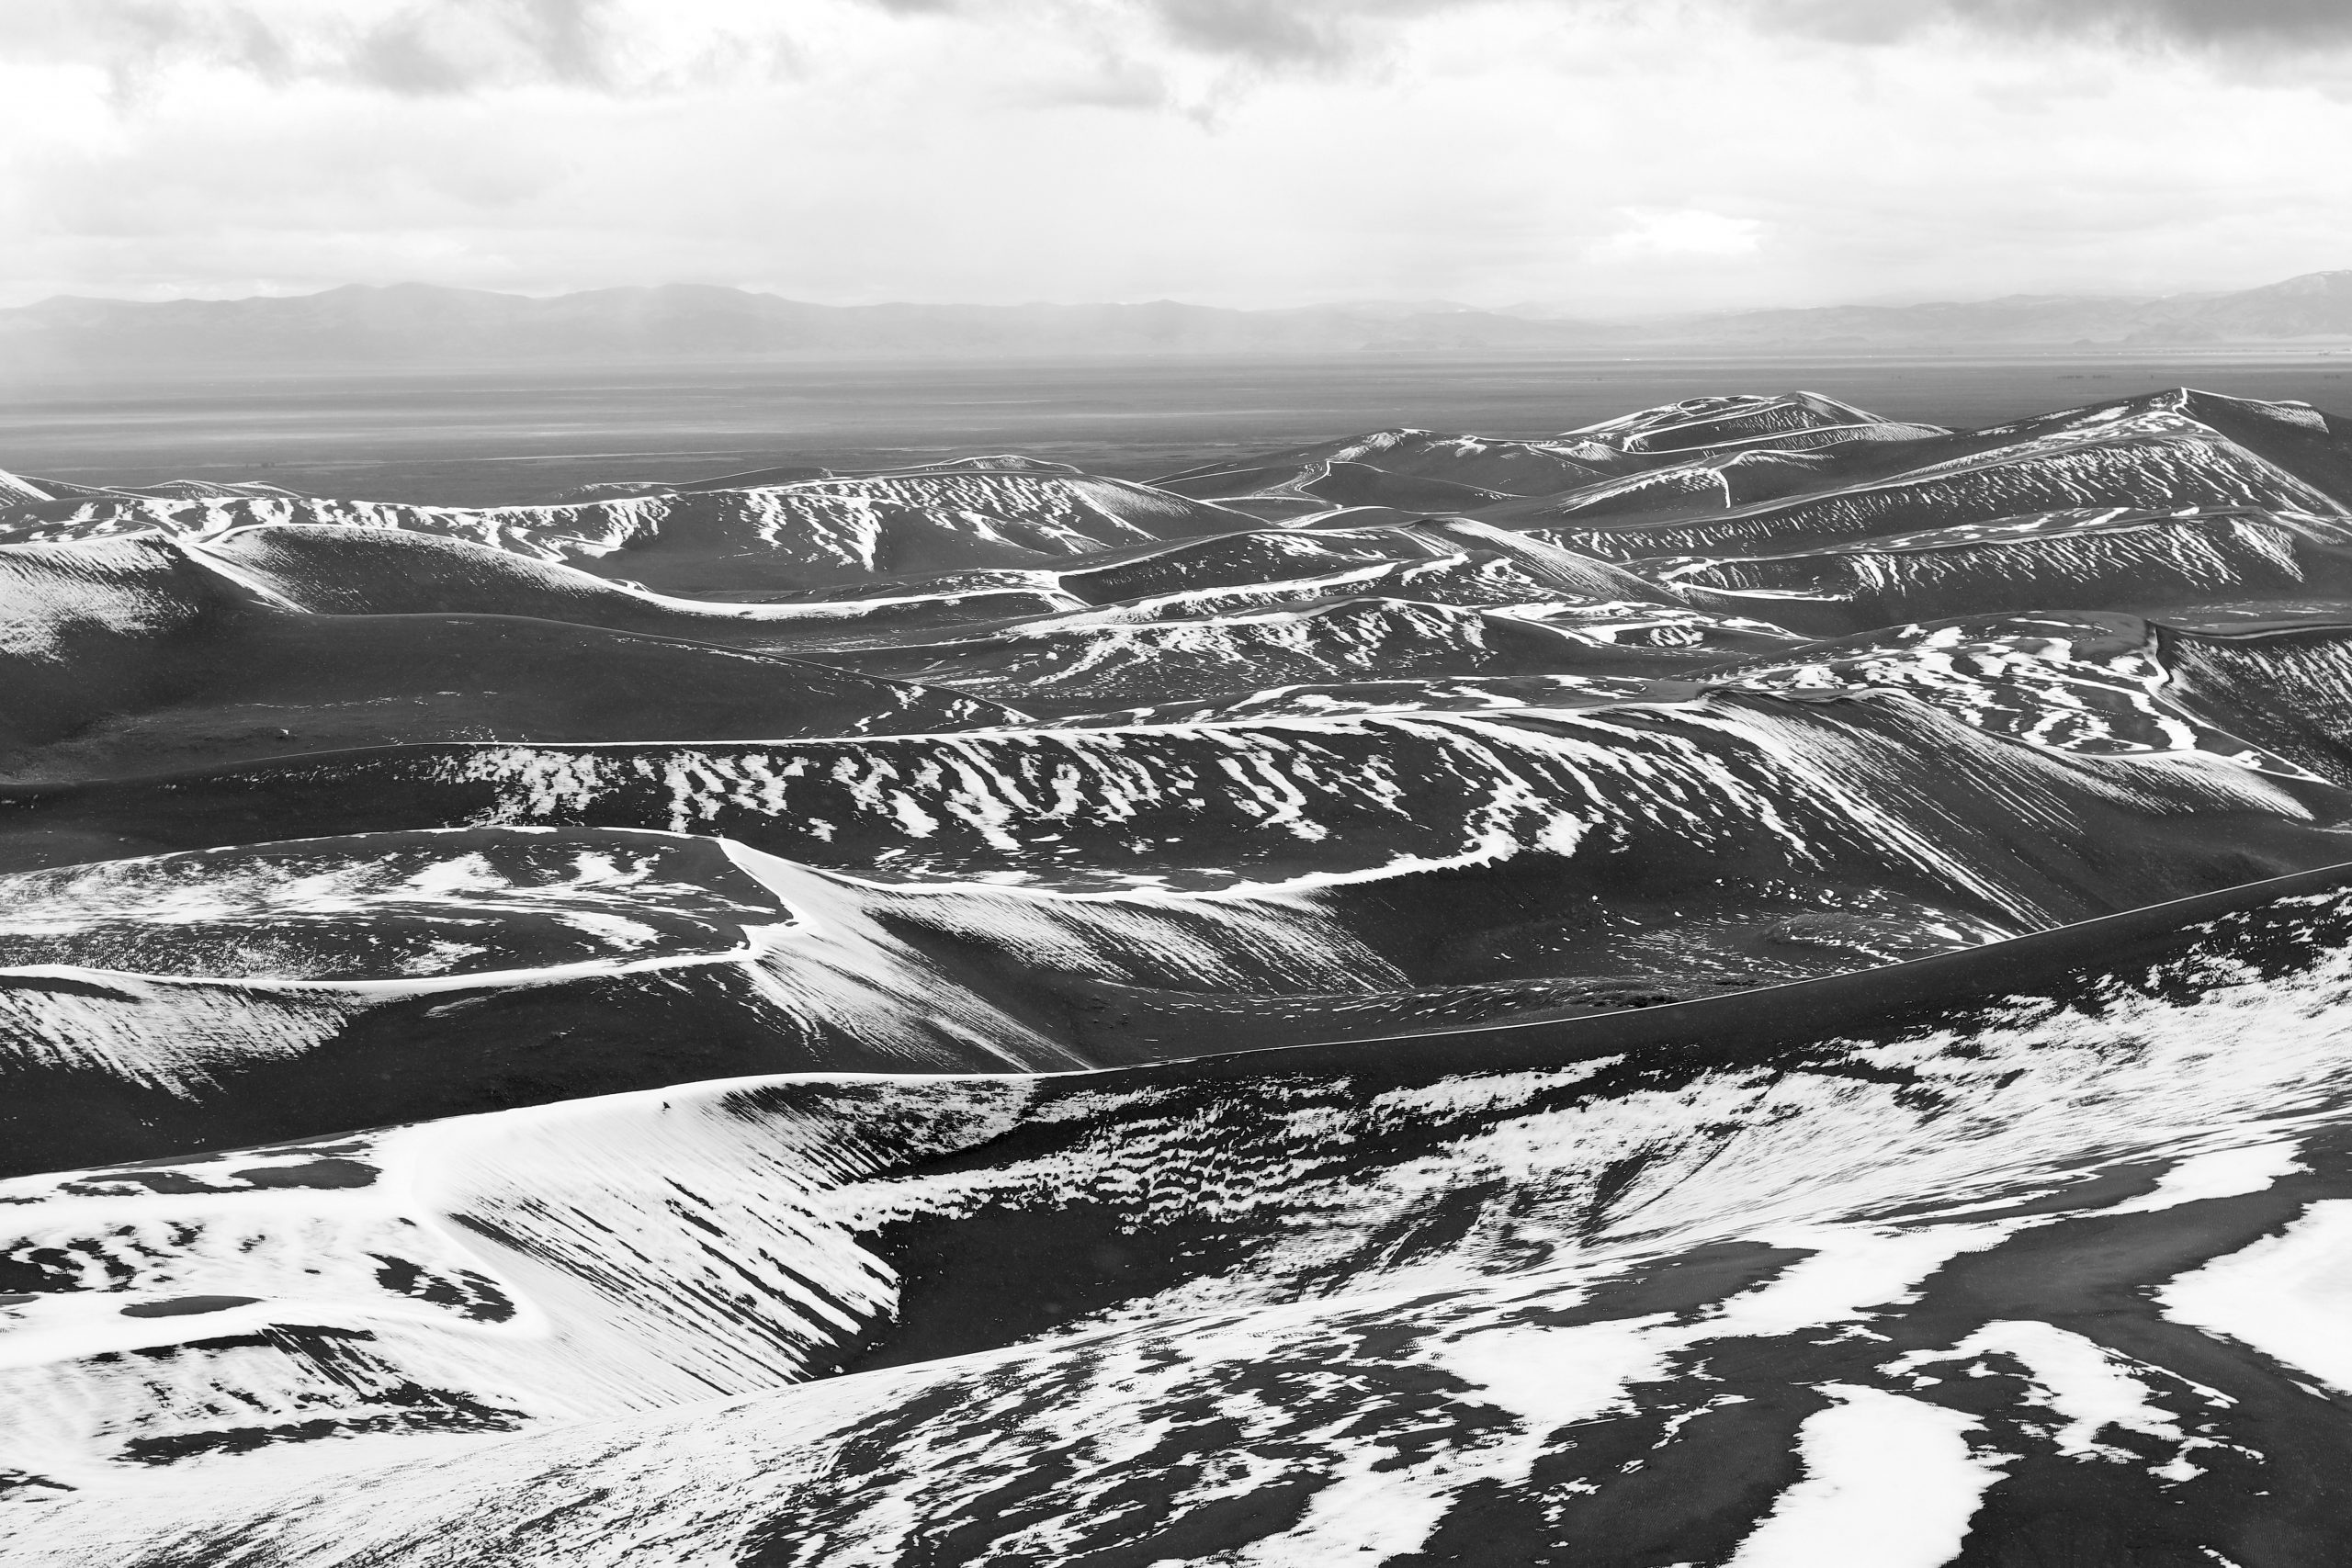 Late Spring Snow, Melting Early #4 (Great Sand Dunes National Park)